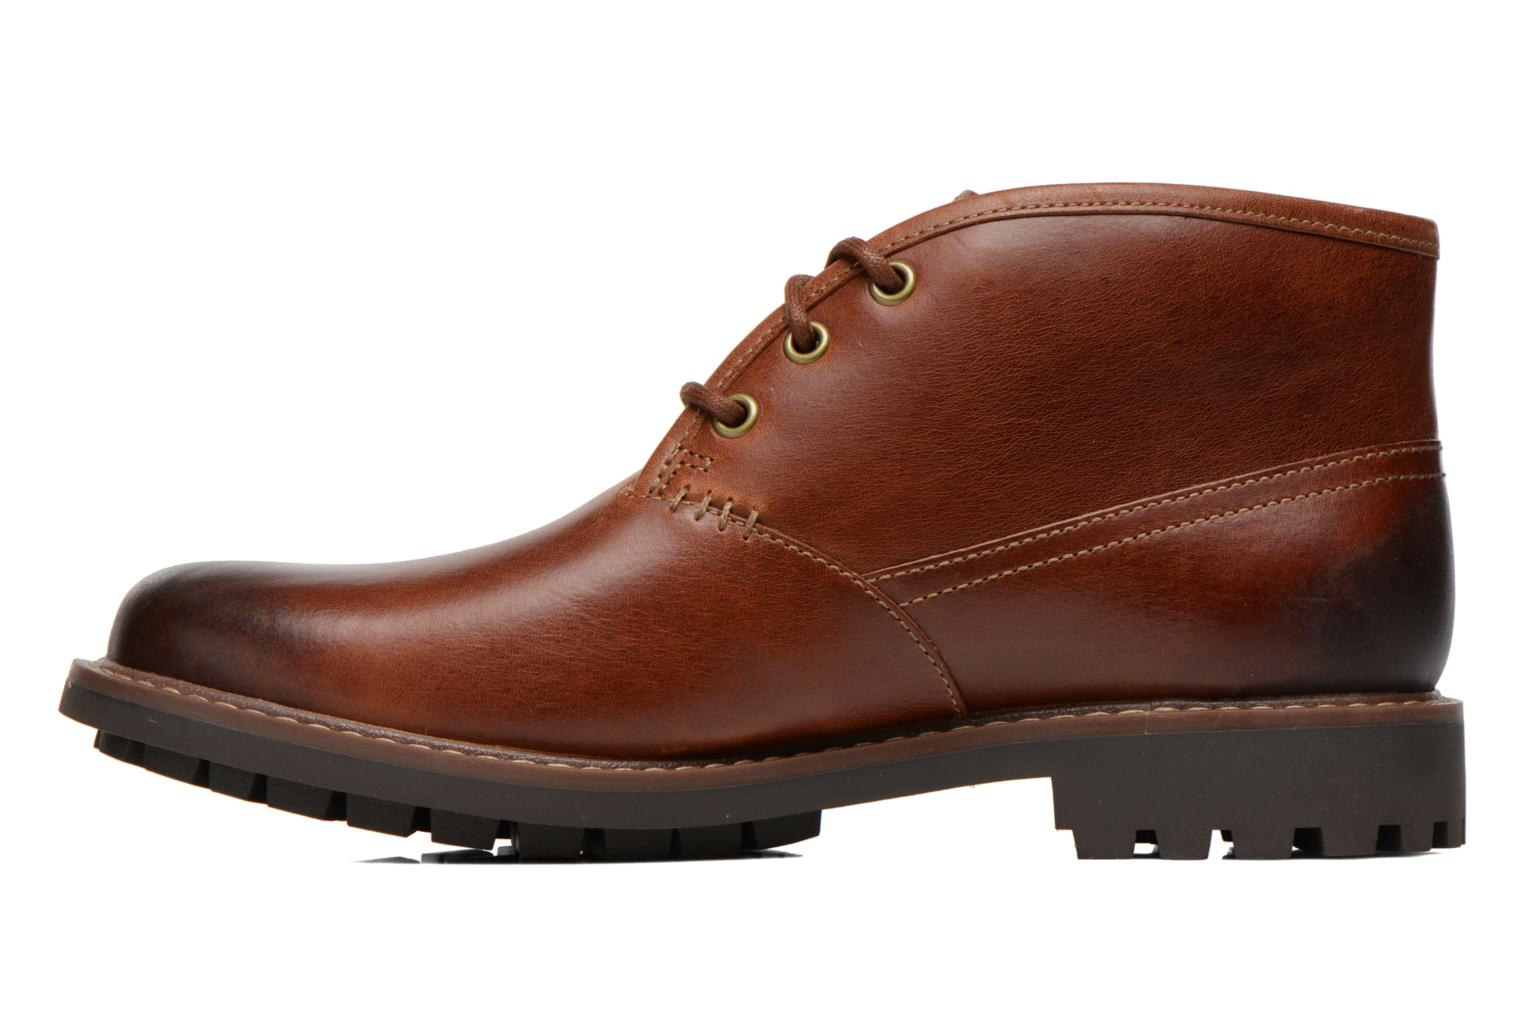 Chaussures à lacets Clarks Montacute Duke Marron vue face